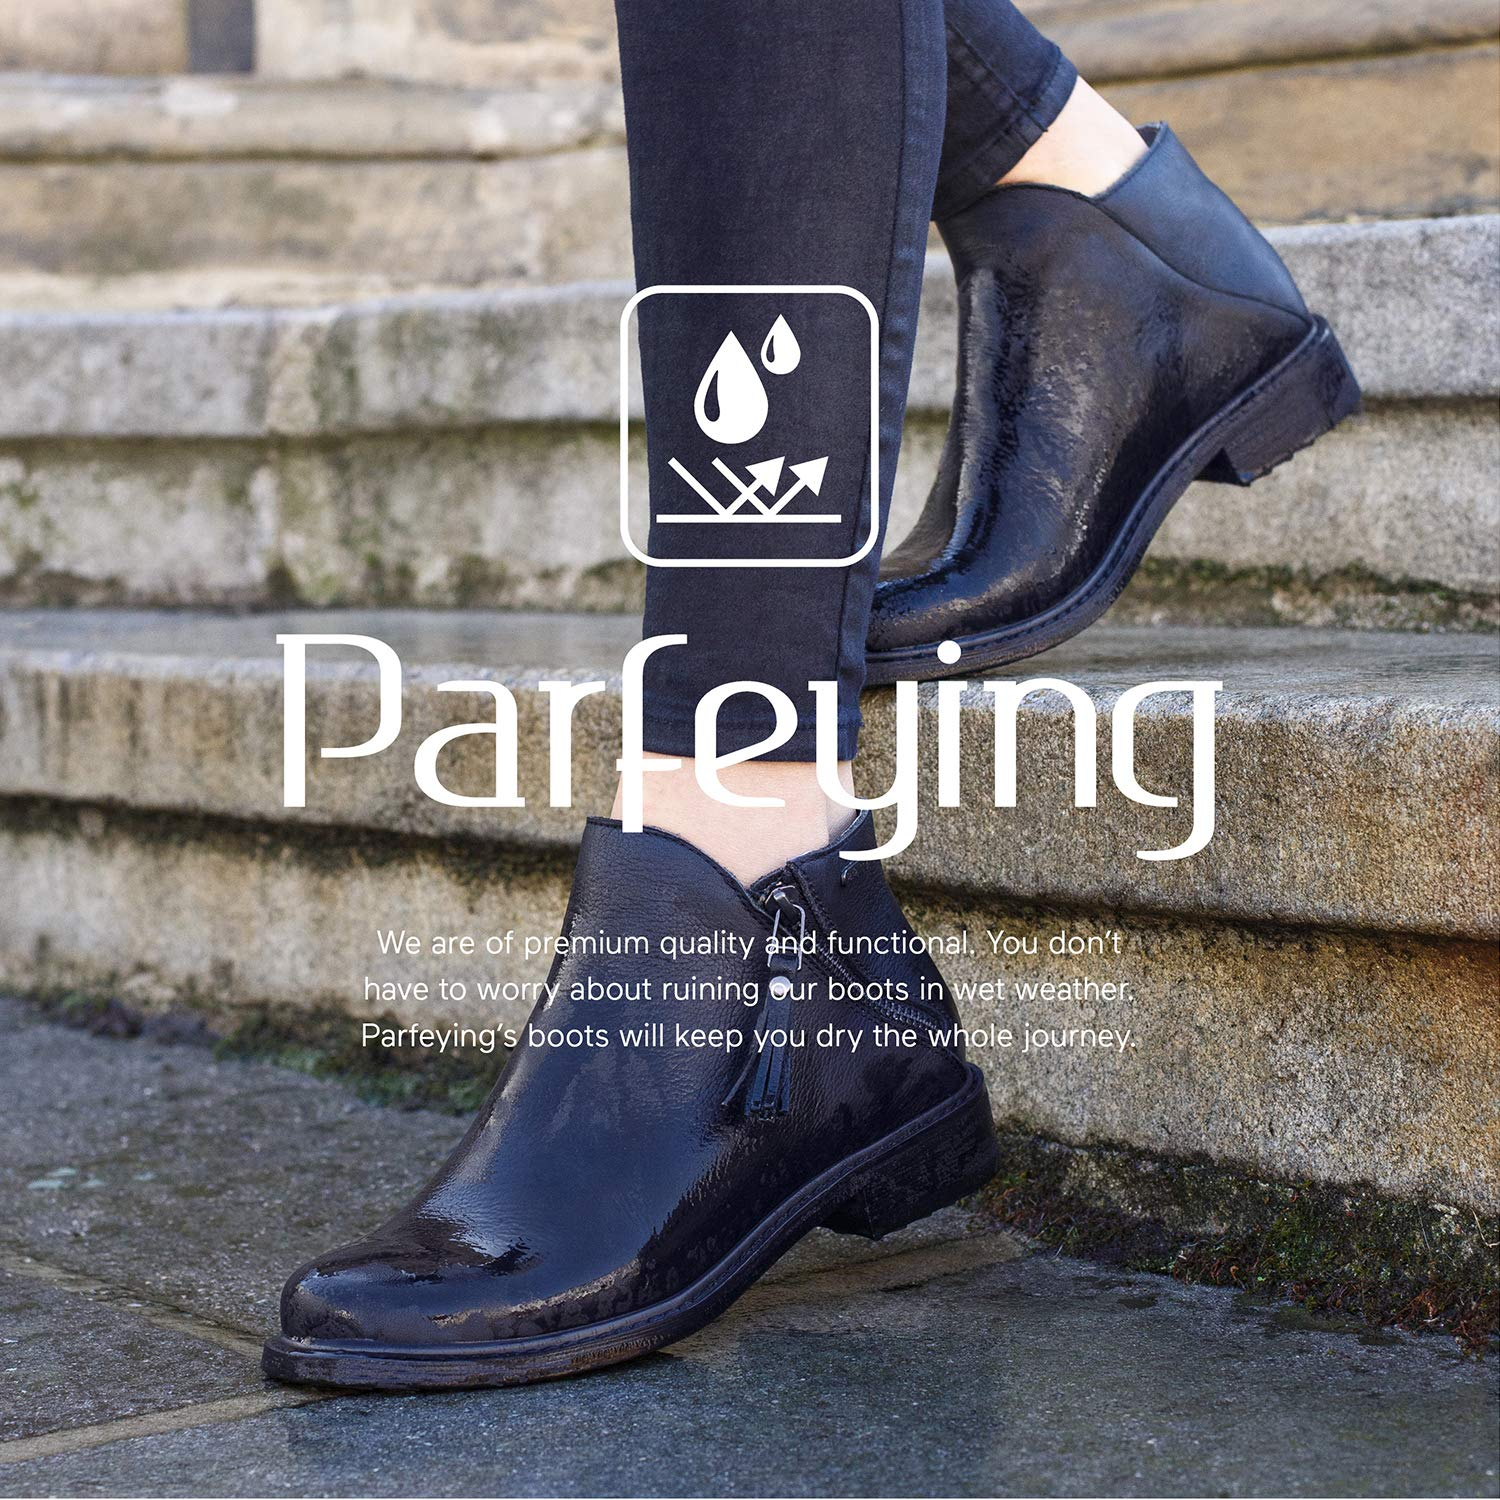 Parfeying Ankle Boots L10138 Pig Leather Lining Waterproof Booties Non-Slip Rubber Sole Womens Casual Shoes